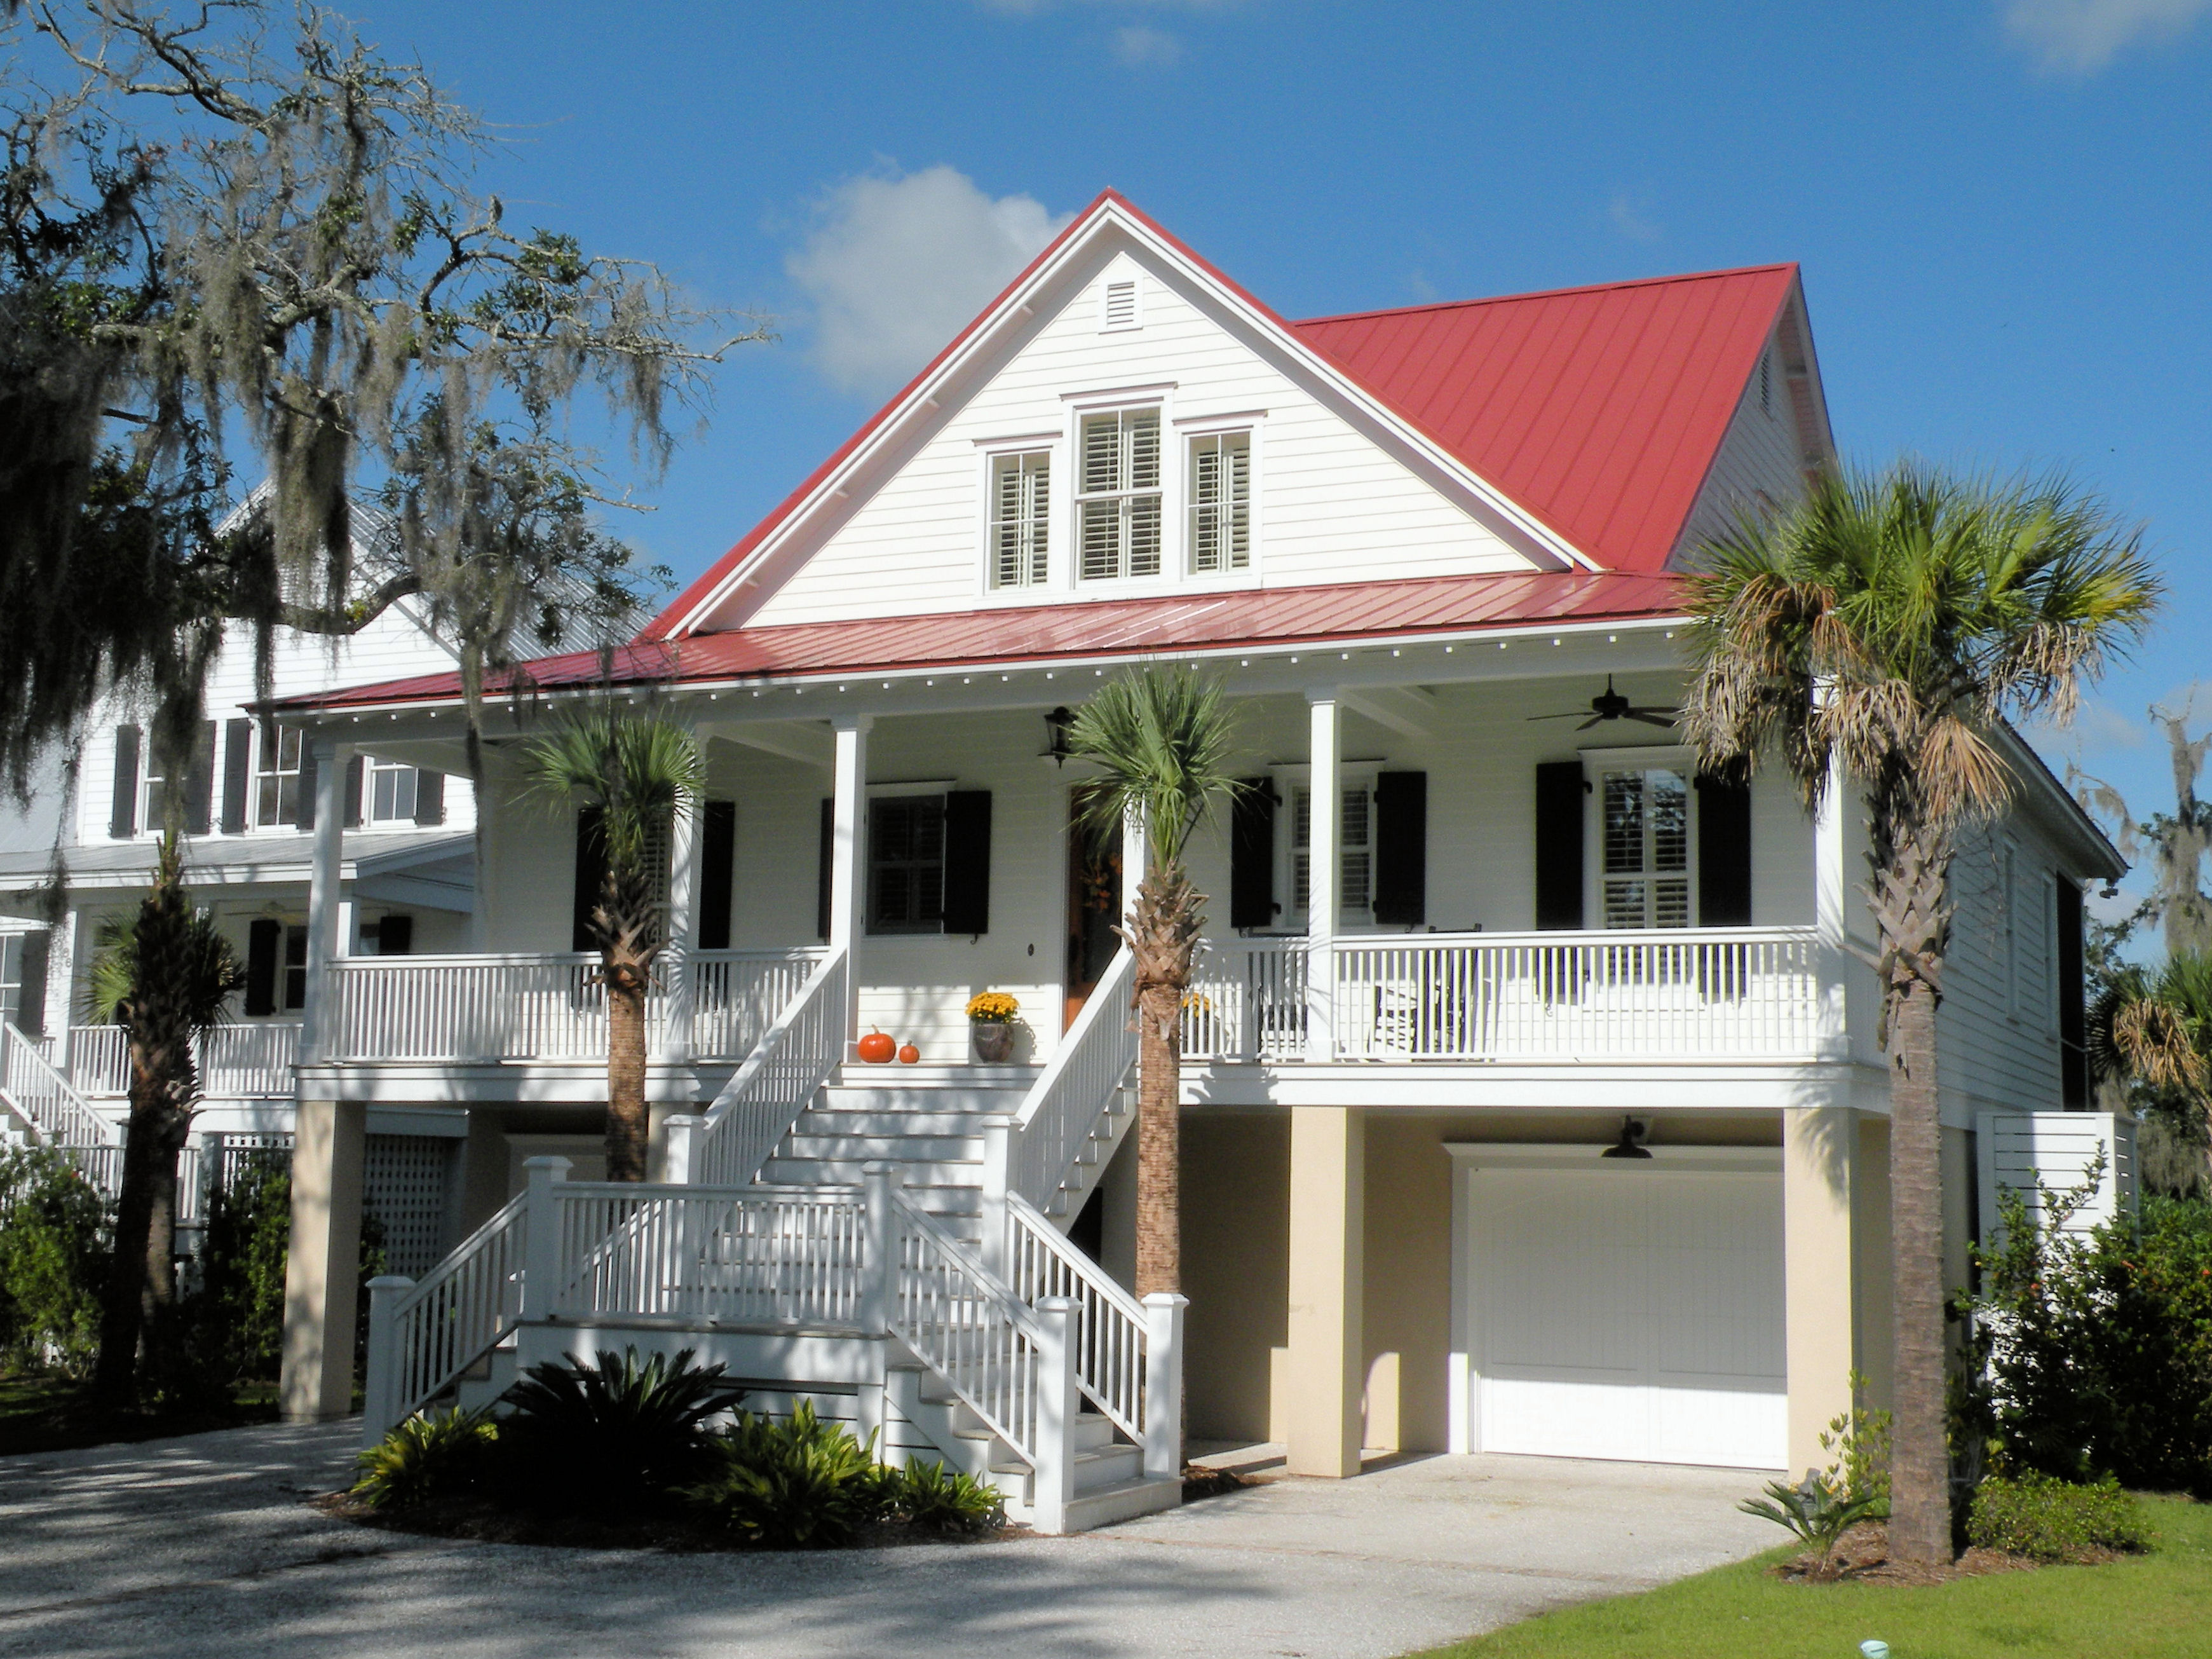 classic low country home plan - 15007nc | architectural designs